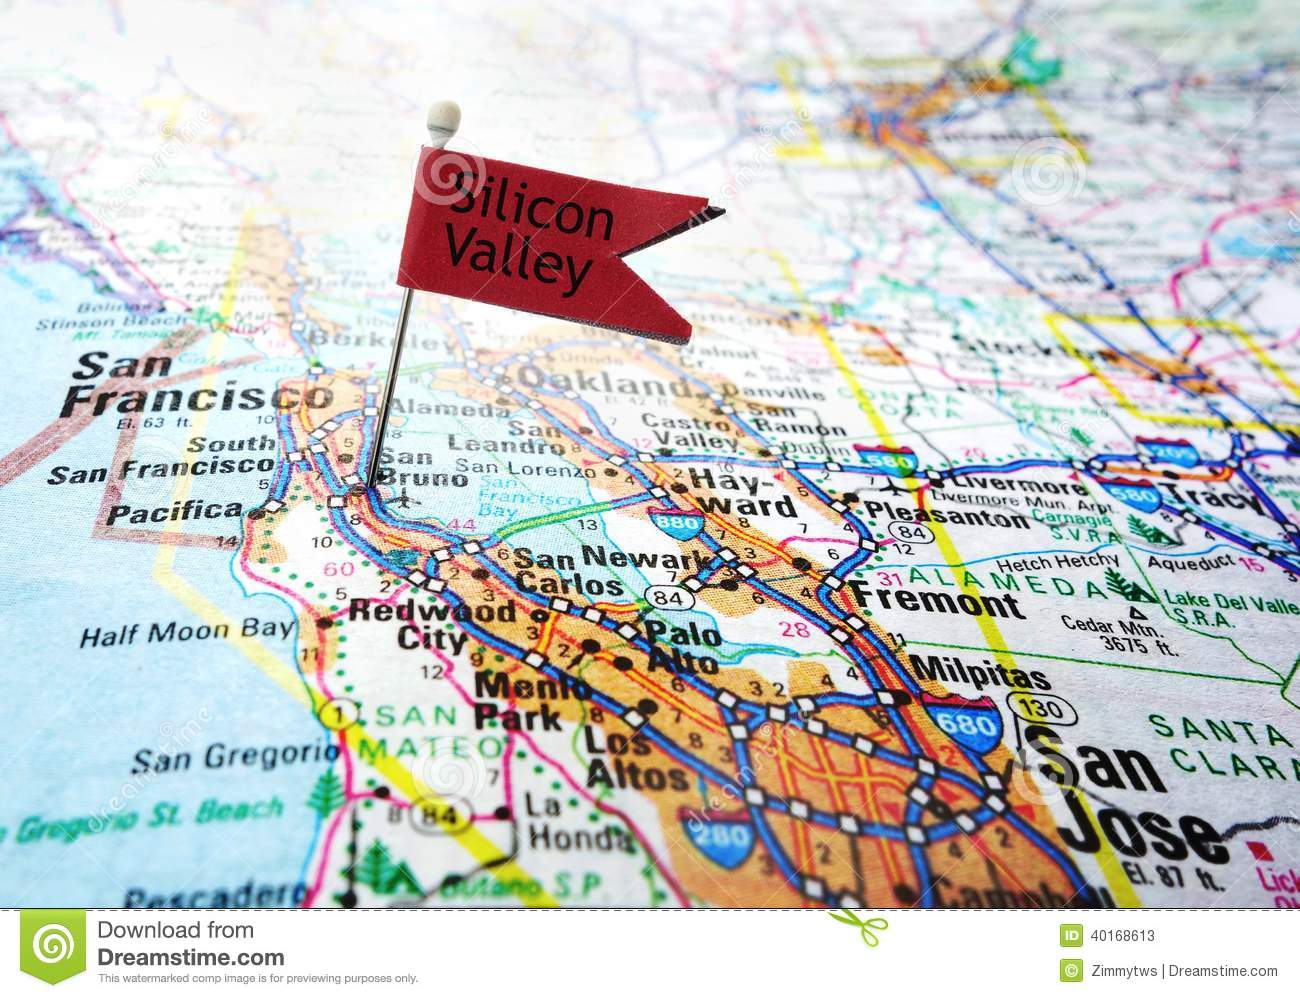 Silicon Valley Karte.Silicon Valley Flag Stock Image Image Of Locate Francisco 40168613